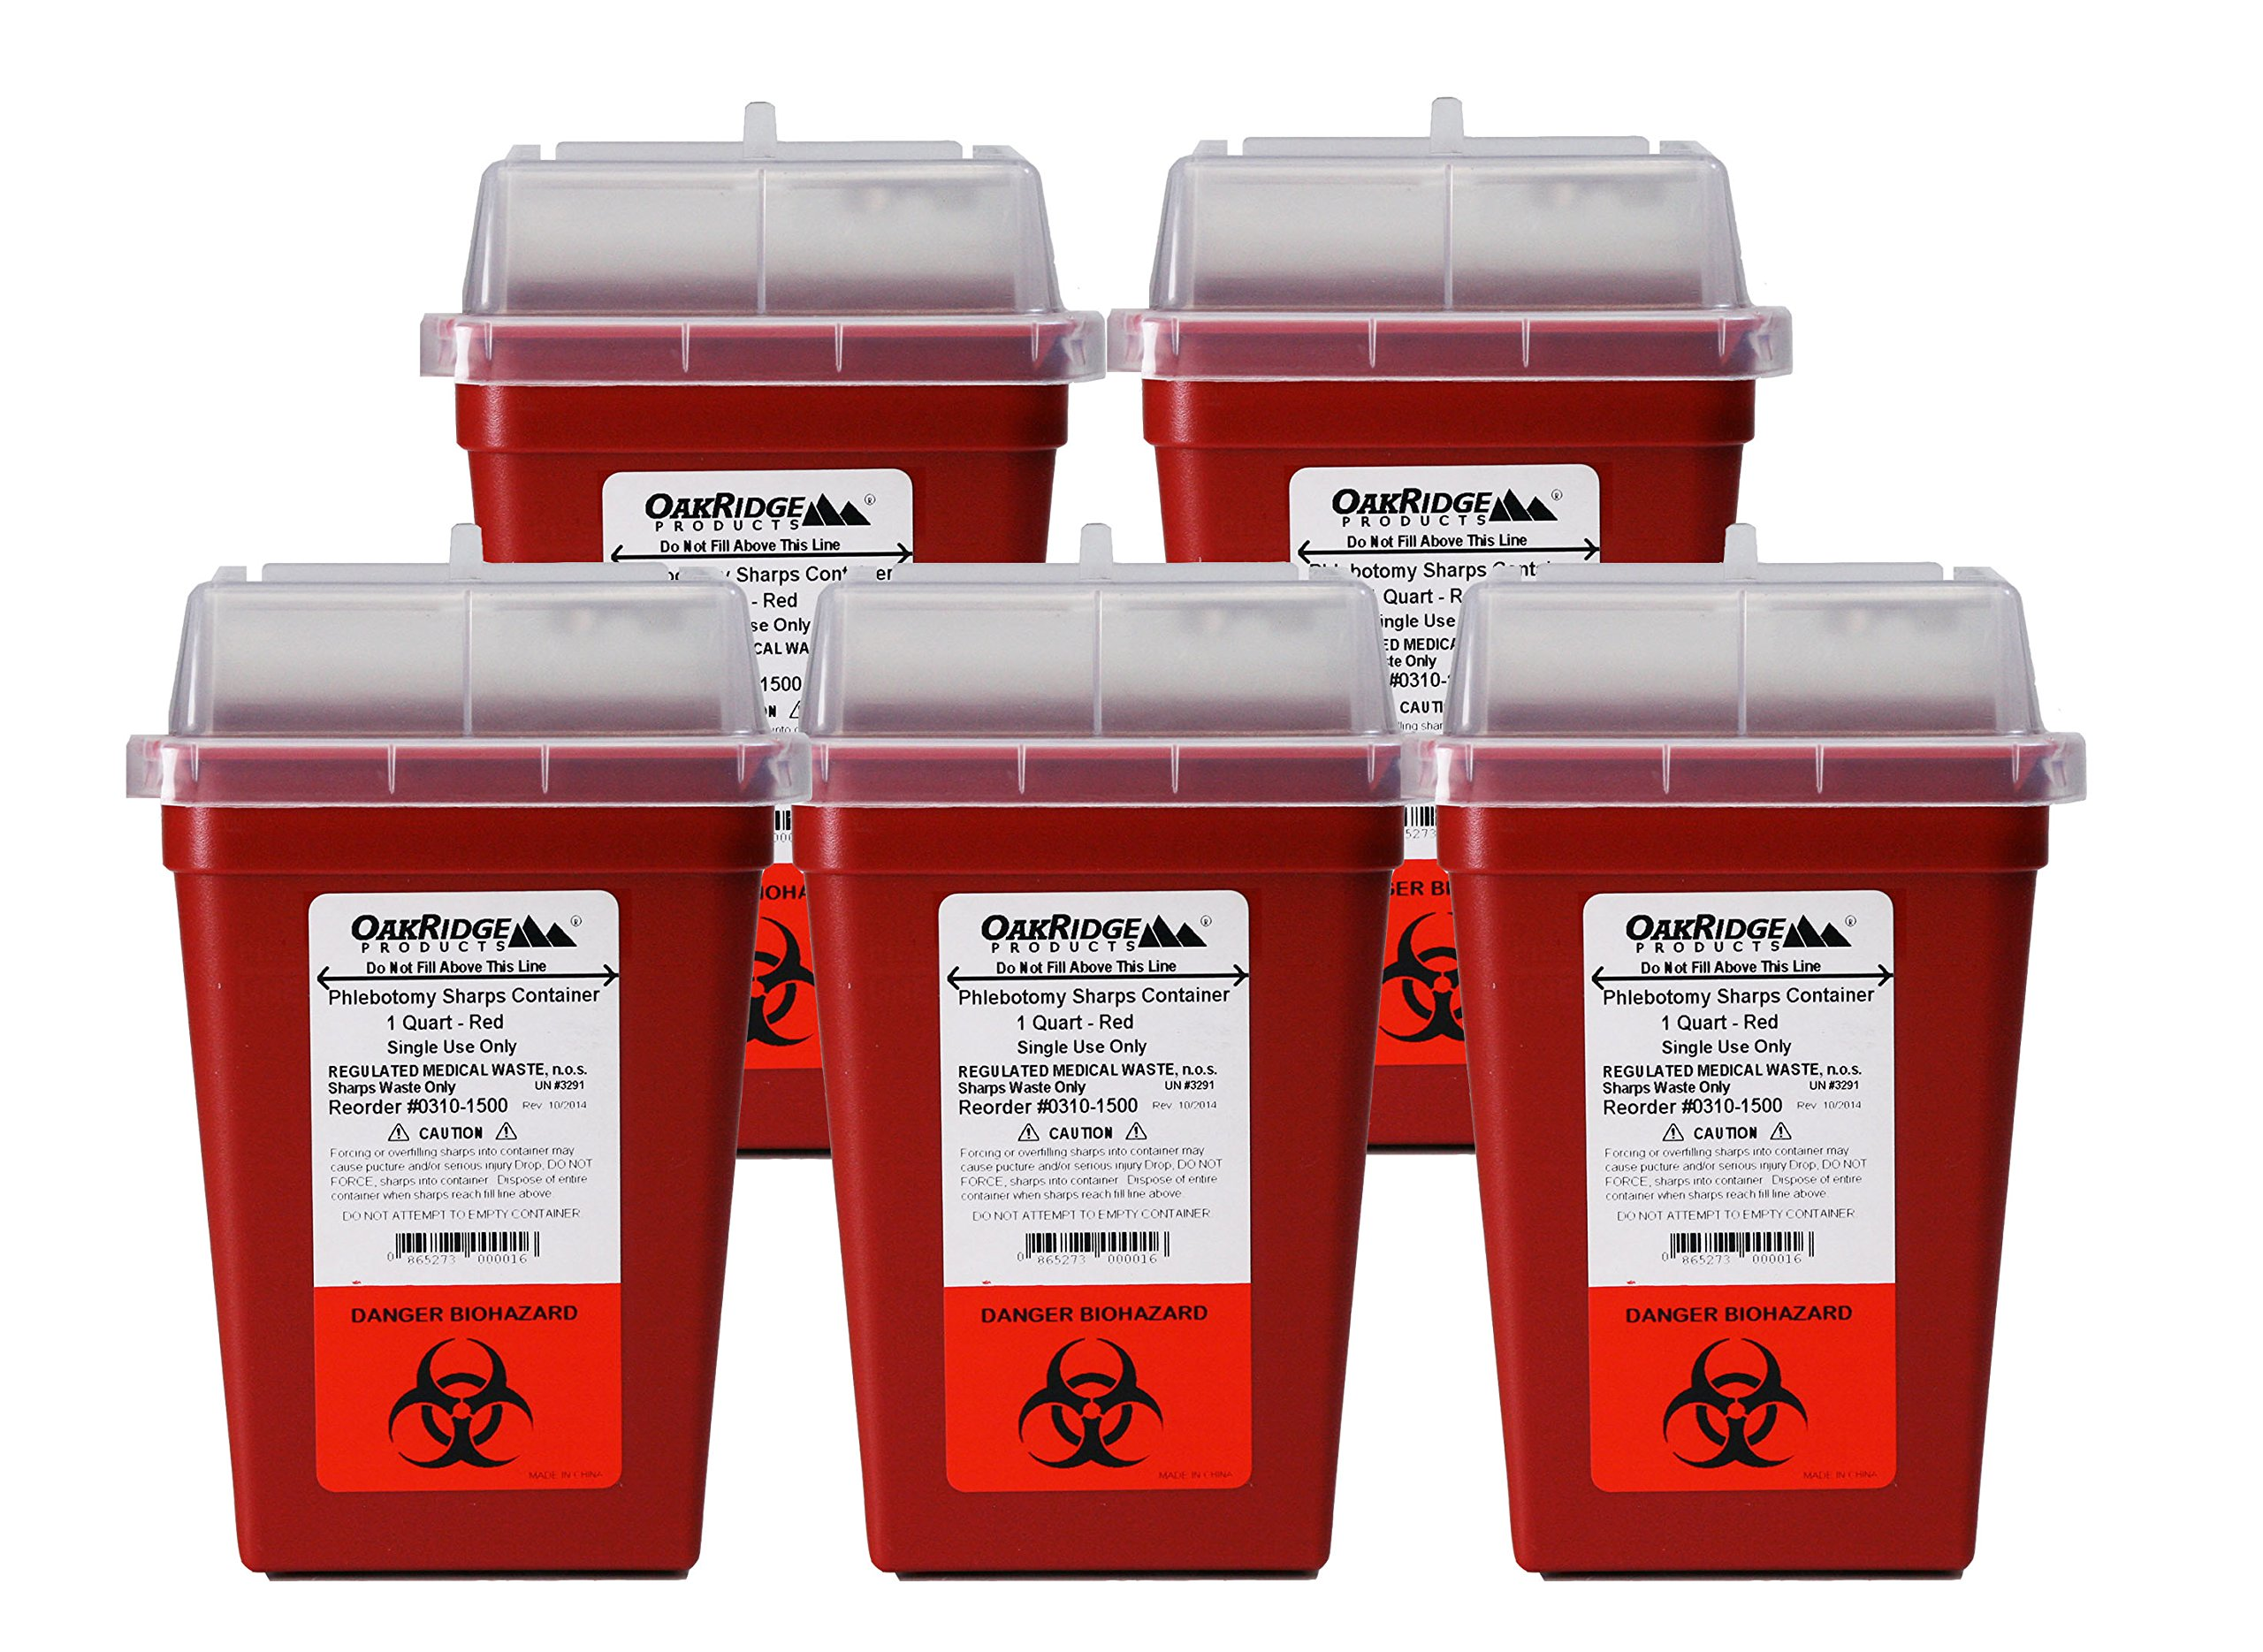 Oakridge Products 1 Quart Size (Pack of 5) | Needle Disposal Container | Buy 4 one get 1 Free